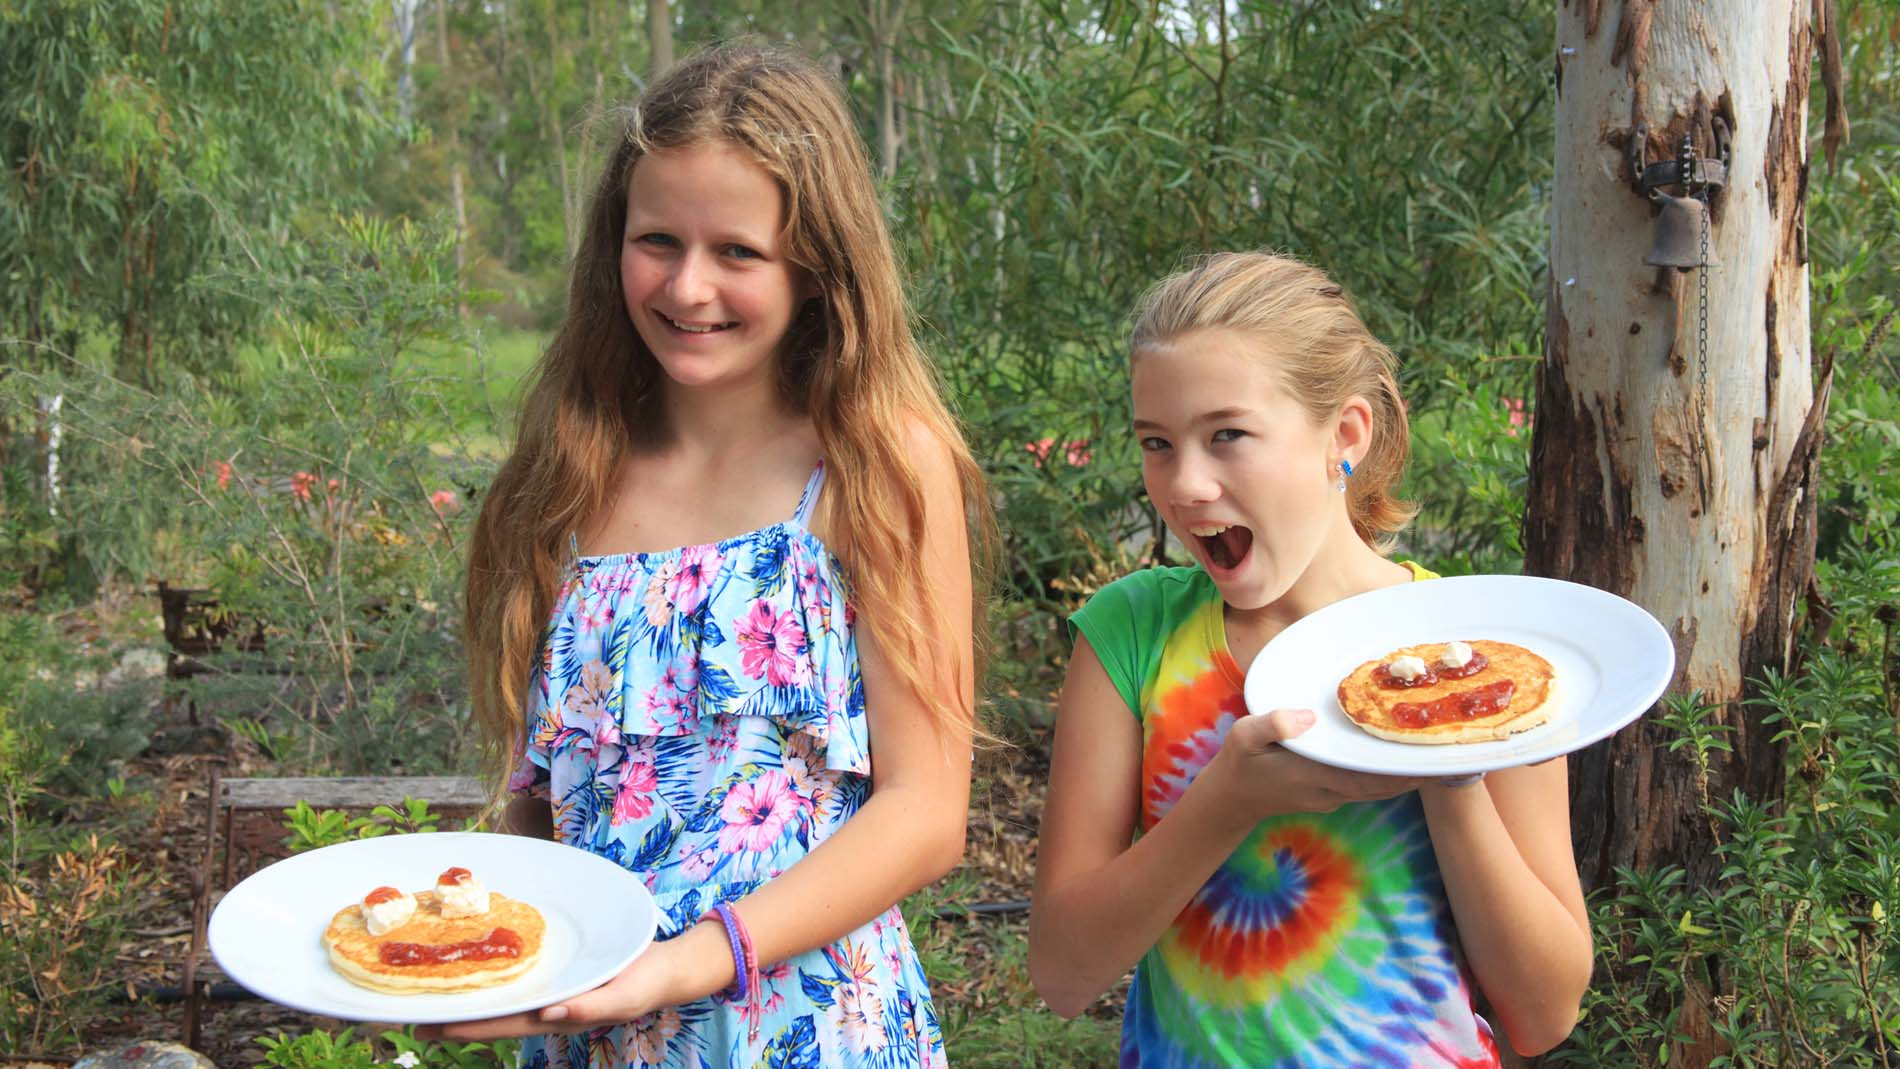 Two happy young campers with their pancakes